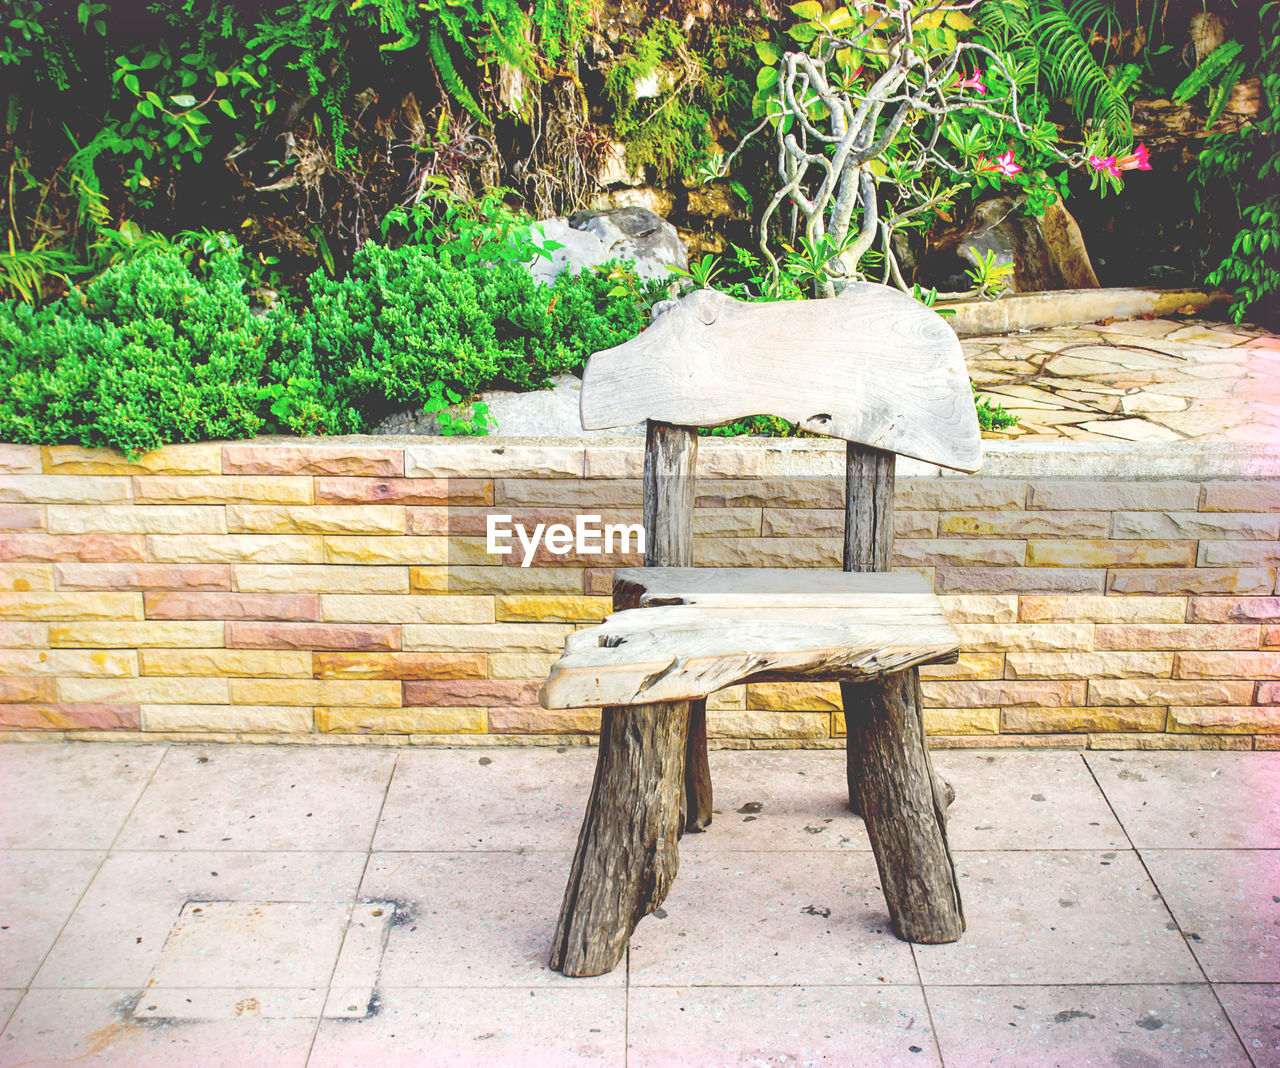 seat, plant, day, no people, chair, wood - material, nature, tree, bench, outdoors, table, growth, front or back yard, absence, wall, footpath, park, architecture, sunlight, wall - building feature